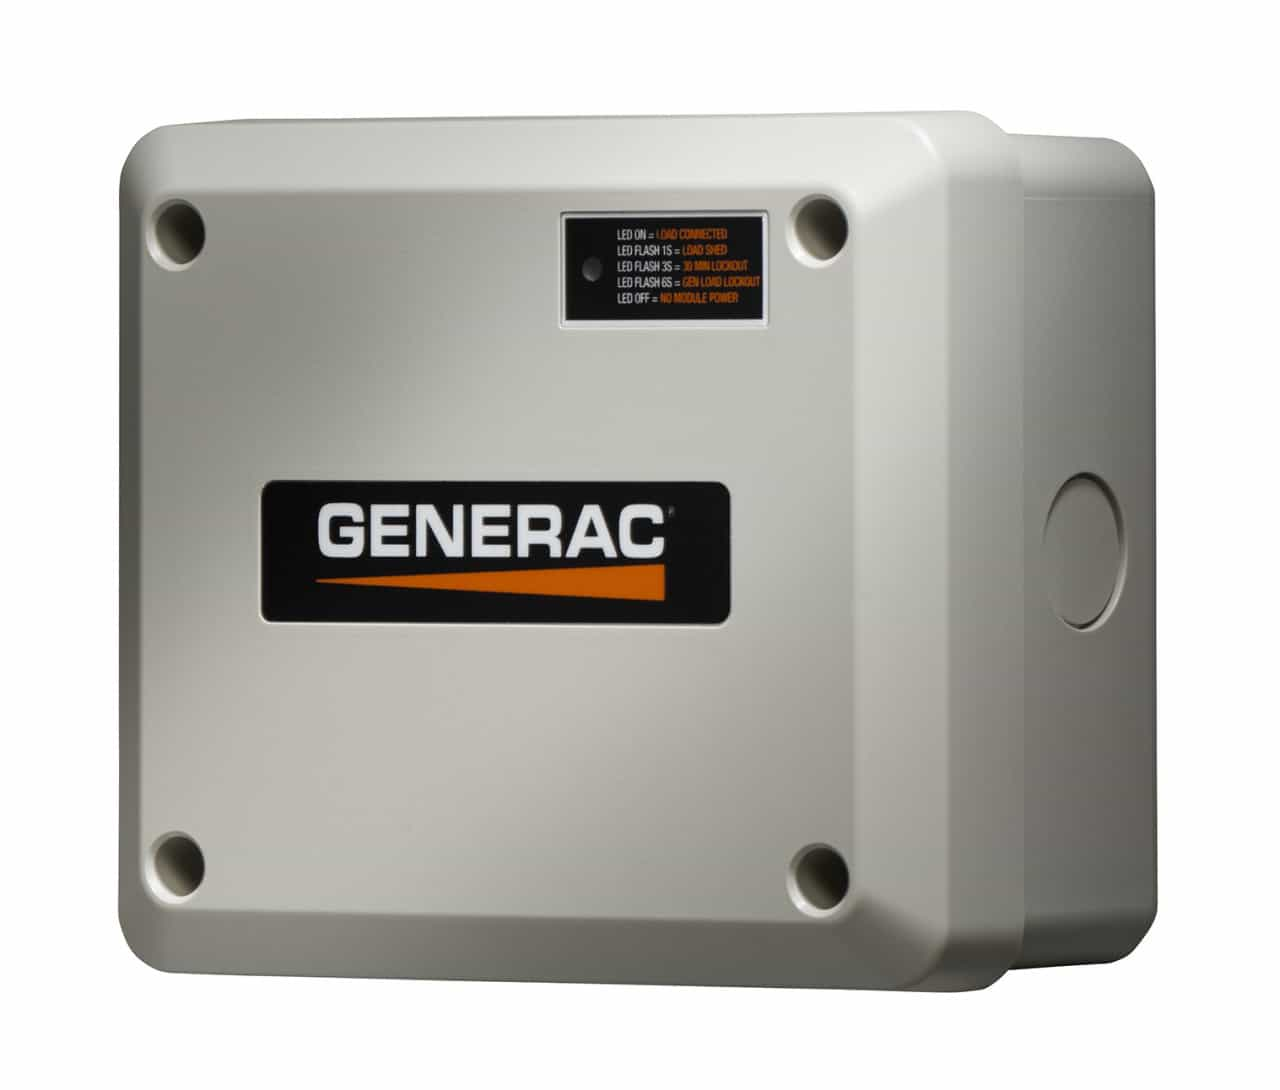 6783_L_Generac__99296 generac smart management modules smm 6873 norwall powersystems generac smart switch wiring diagram at mifinder.co